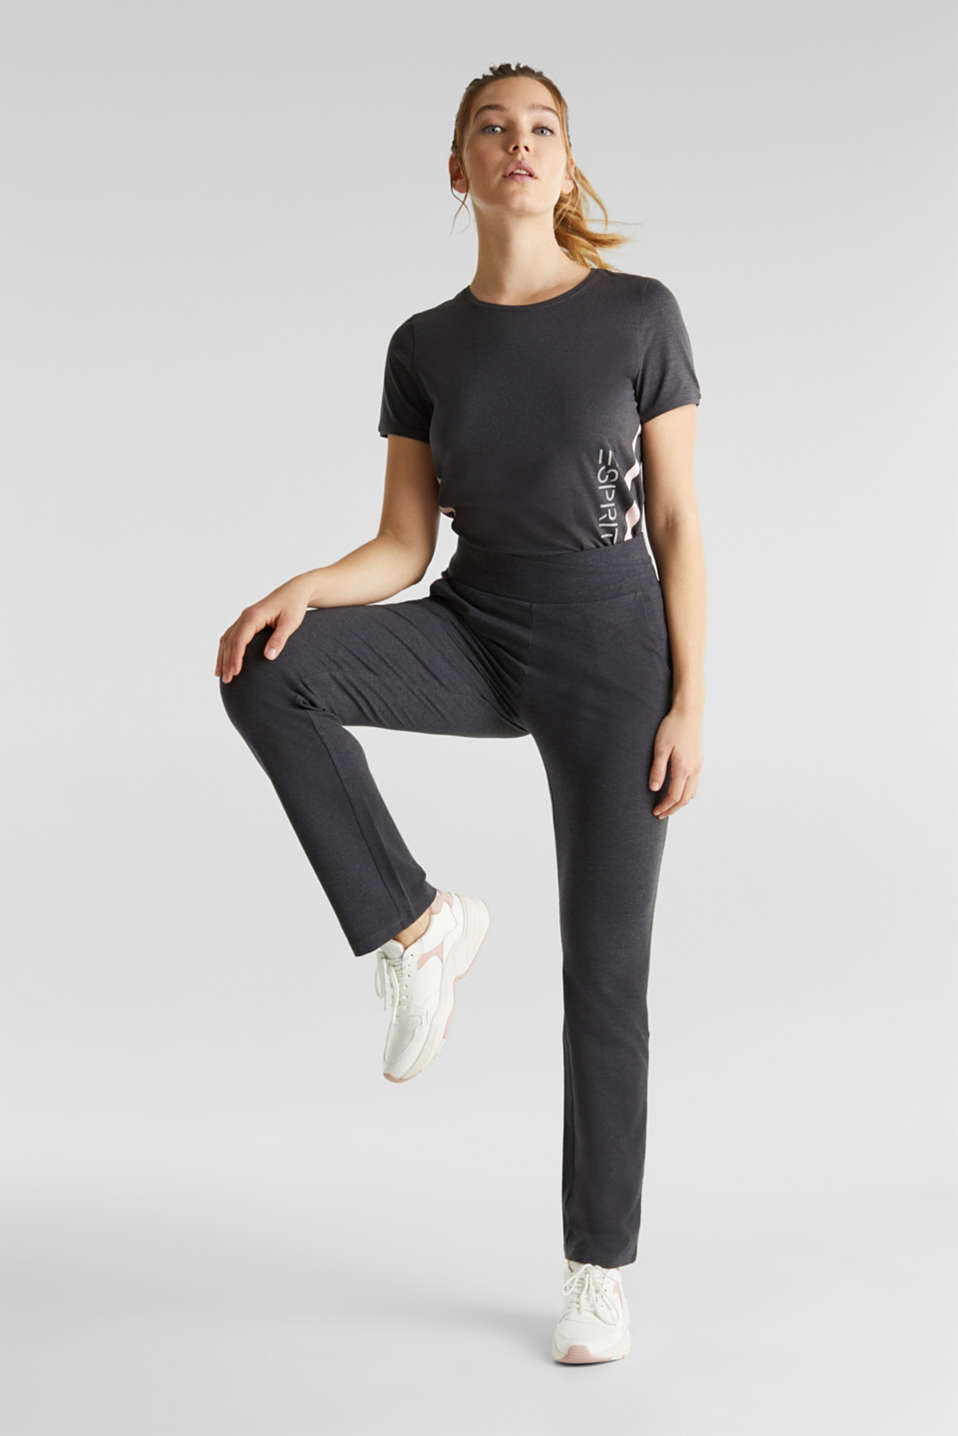 Stretch jersey trousers with organic cotton, ANTHRACITE 2, detail image number 1